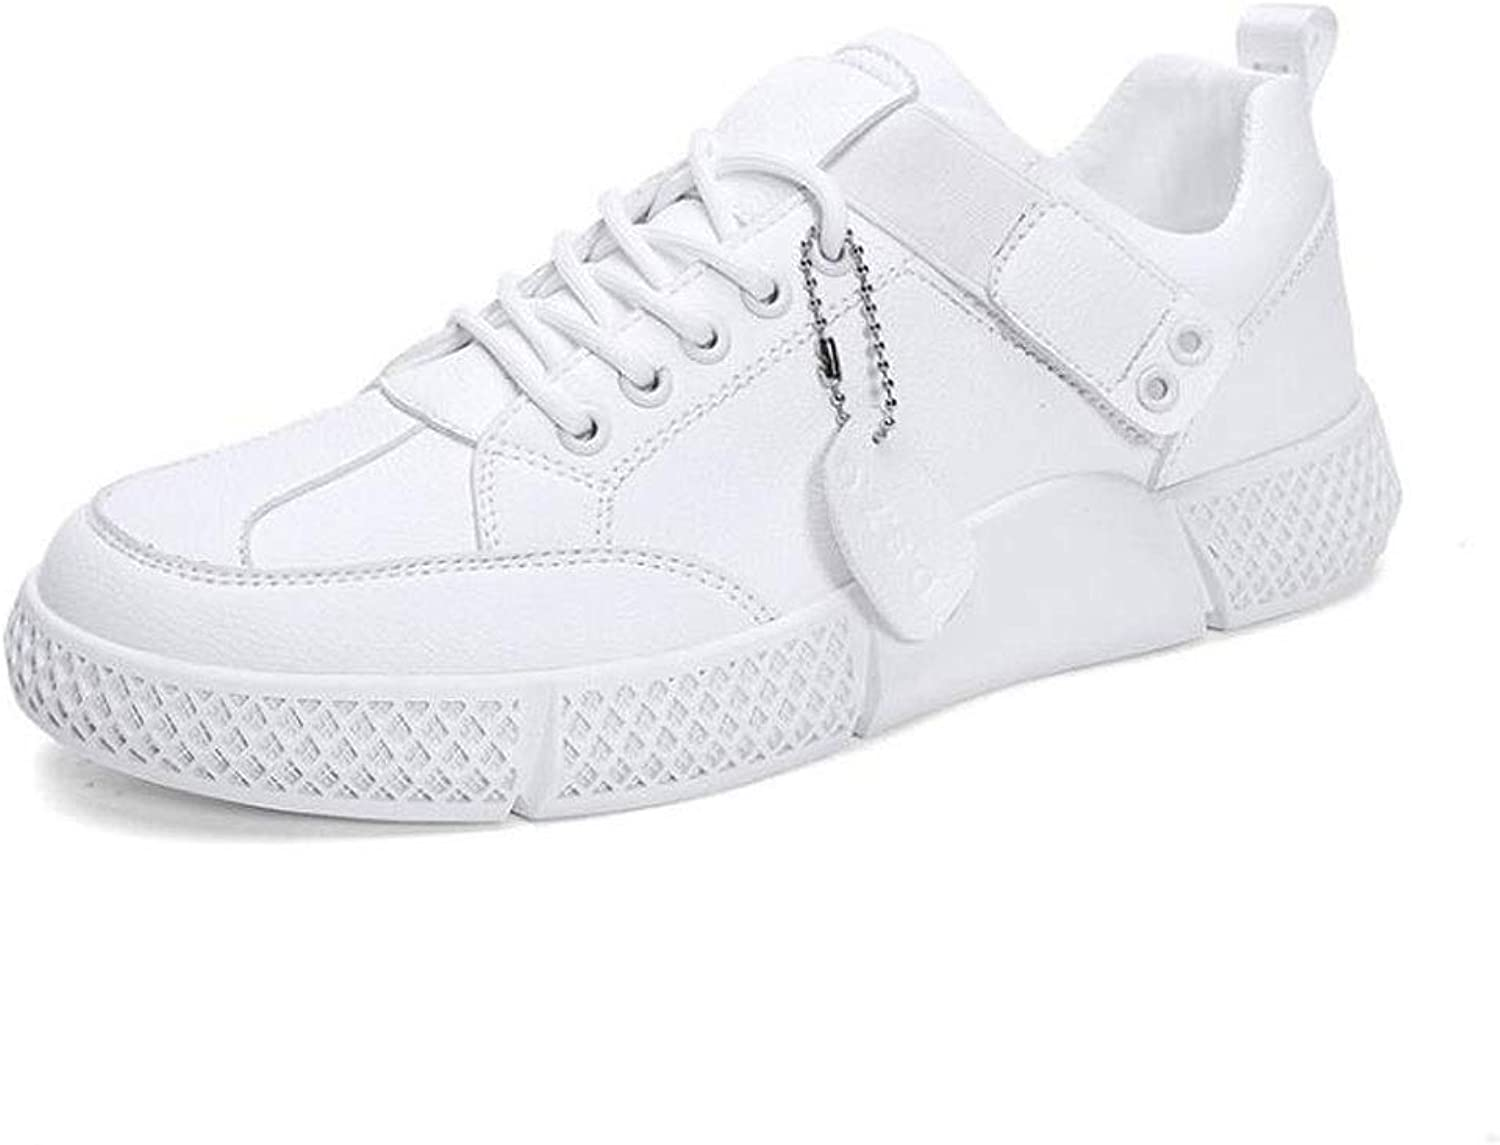 ZJEXJJ Men's sneakers casual shoes sweat-absorbent breathable running shoes leather travel shoes (color   White, Size   8.5 UK)